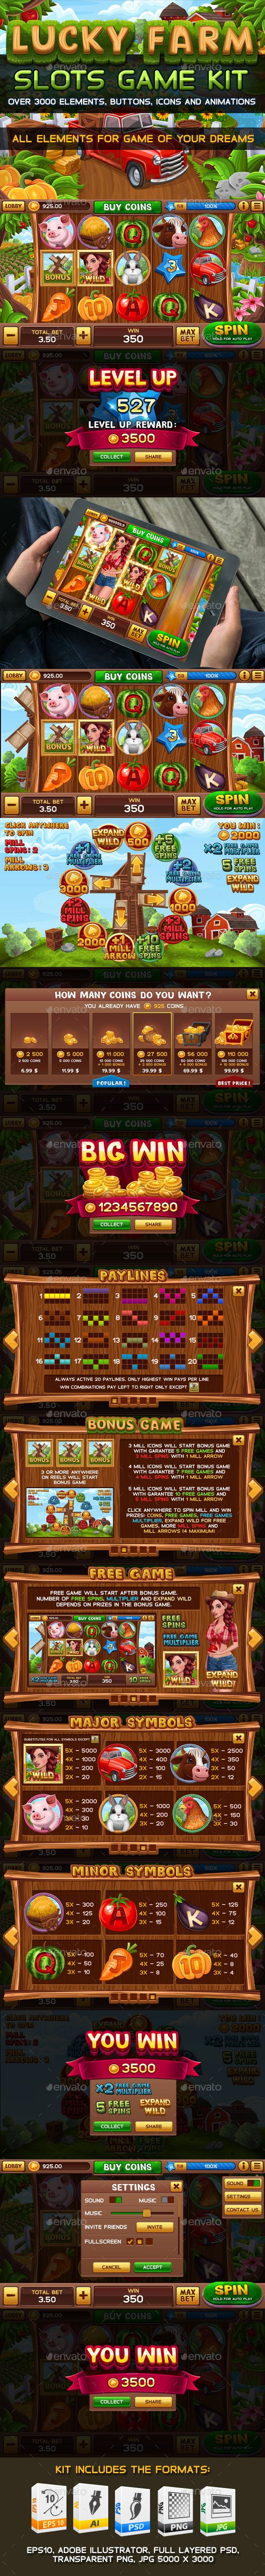 Lucky Farm Slots Game KIT — Photoshop PSD #reel #template • Download ➝ https://graphicriver.net/item/lucky-farm-slots-game-kit/20083374?ref=pxcr